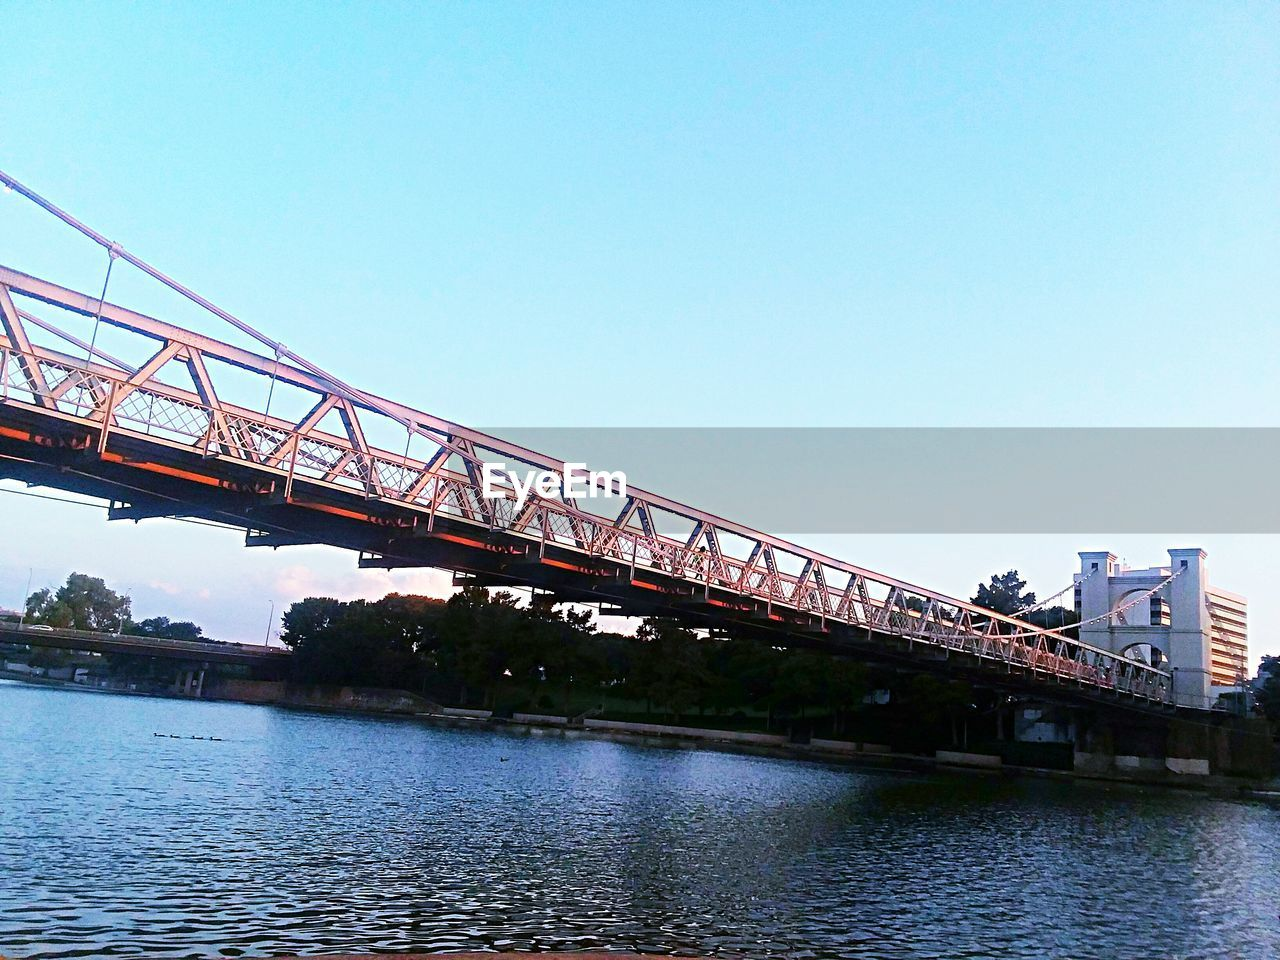 bridge, bridge - man made structure, connection, water, sky, built structure, architecture, transportation, river, clear sky, nature, copy space, day, no people, waterfront, railway bridge, blue, low angle view, outdoors